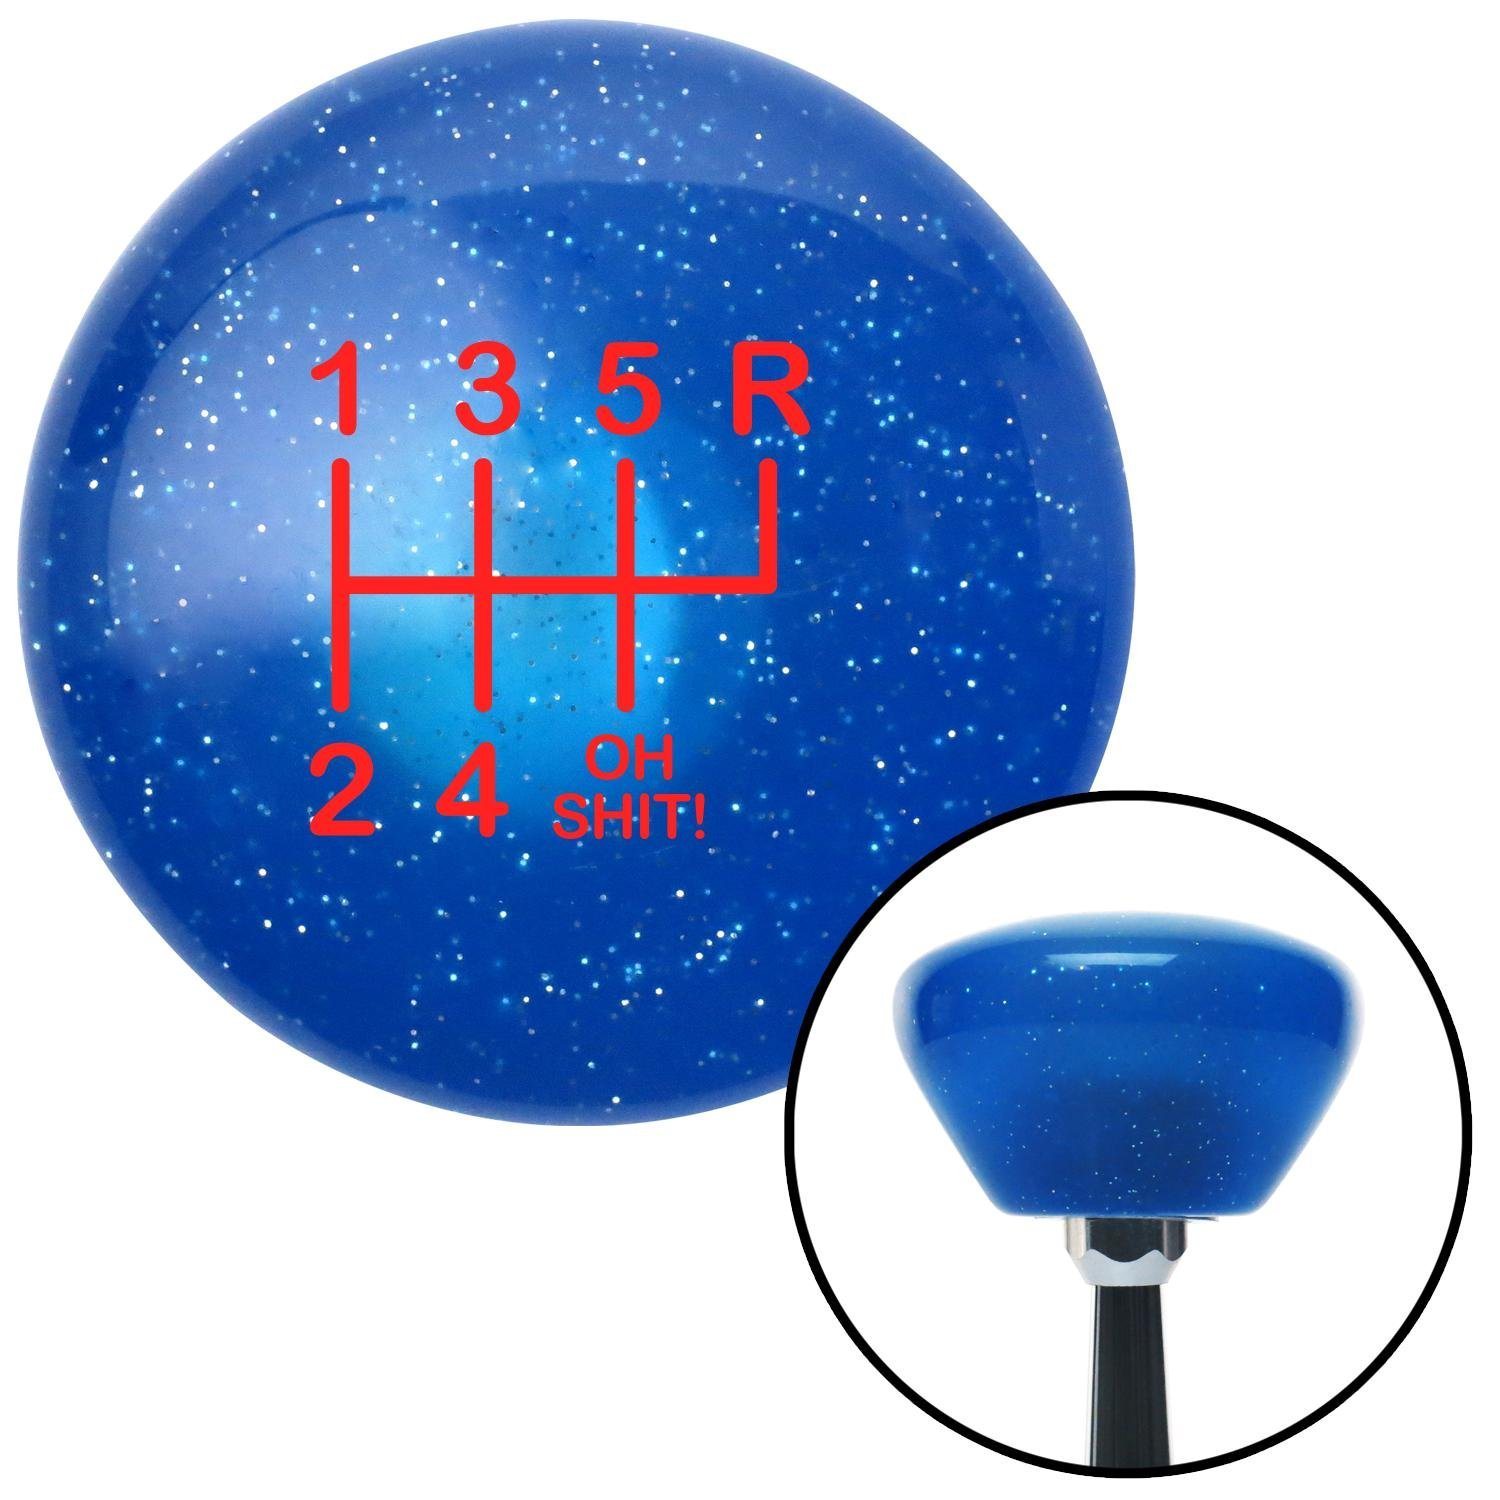 American Shifter 192322 Blue Retro Metal Flake Shift Knob with M16 x 1.5 Insert Red Shift Pattern OS26n